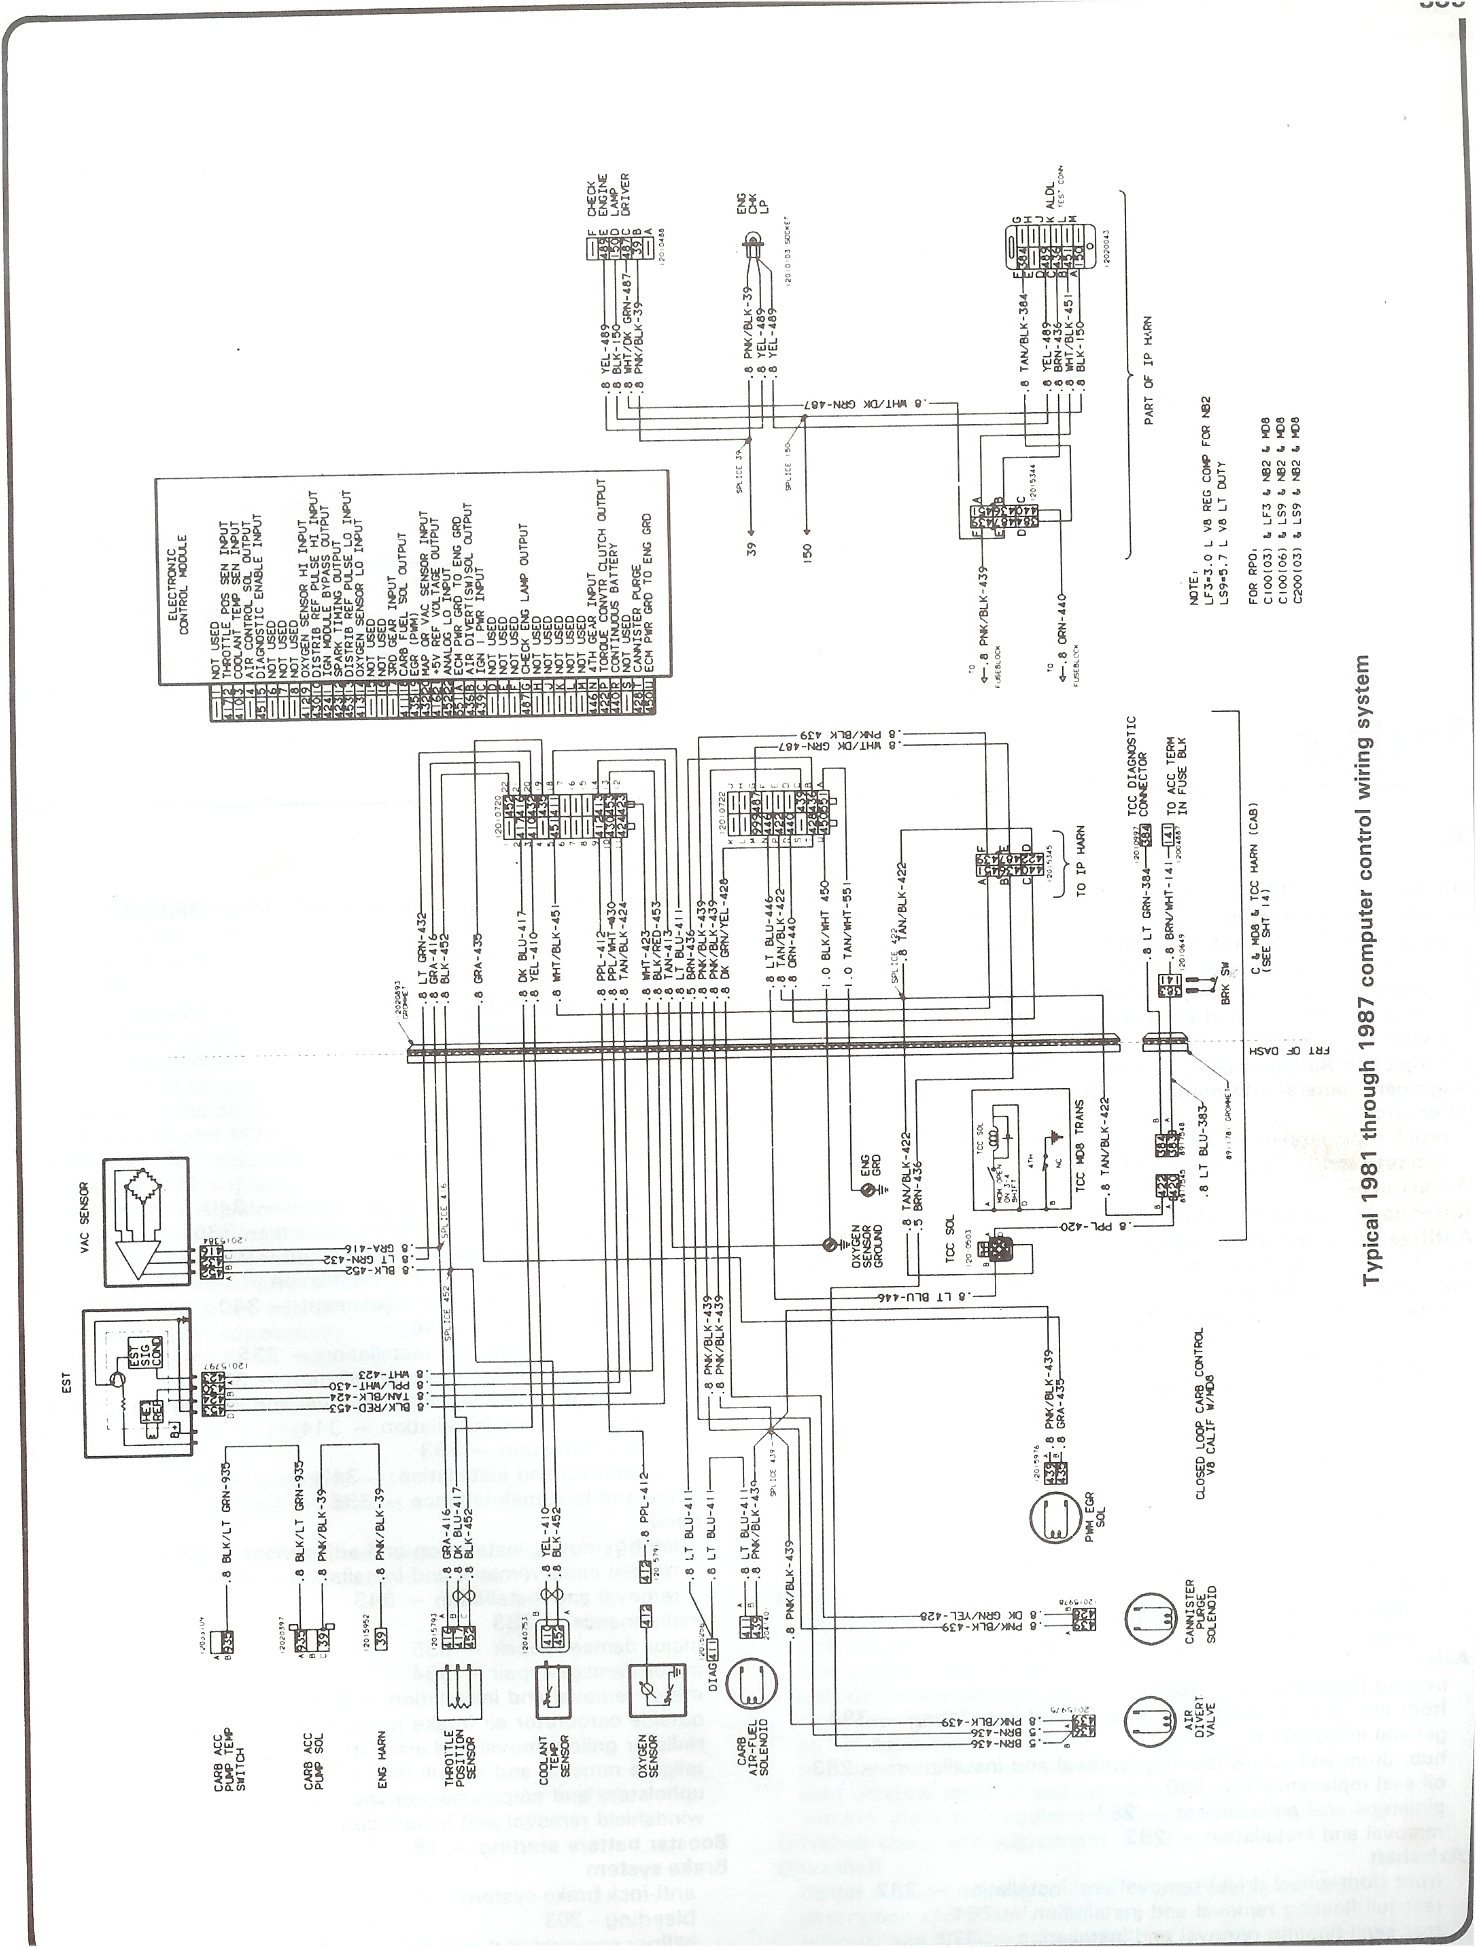 Chevy Camaro Ignition Wiring Diagram